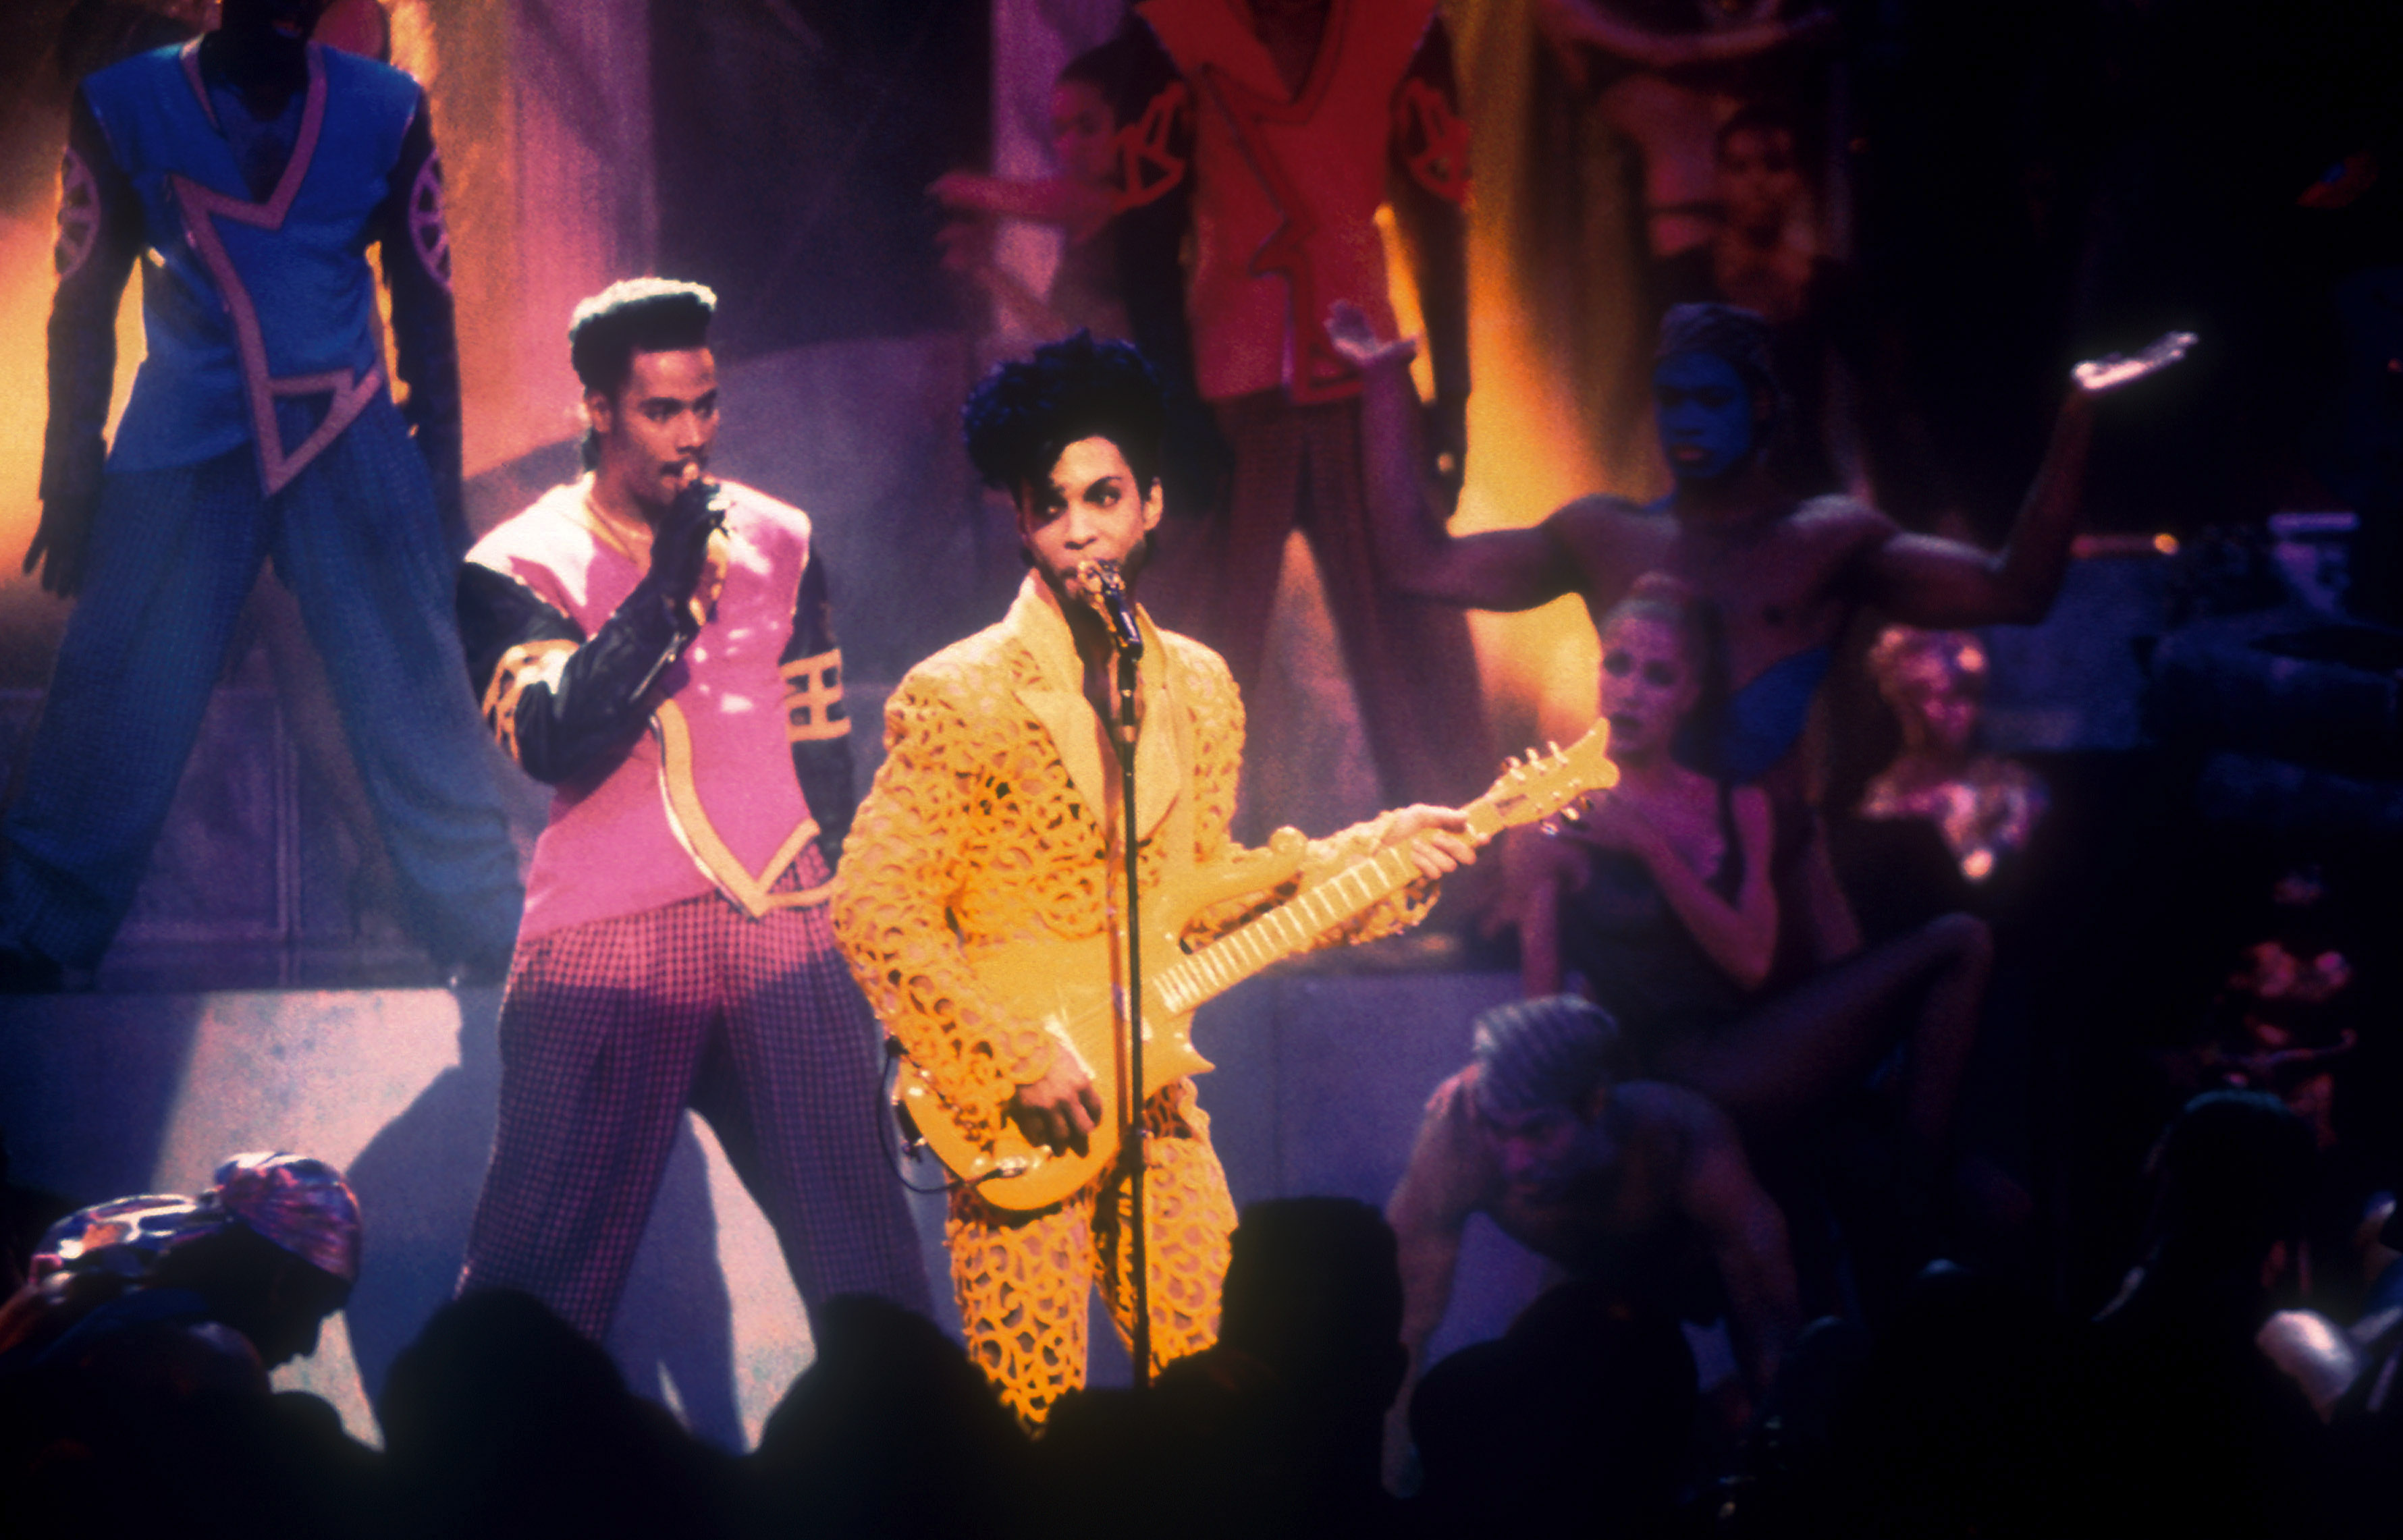 Prince performs at the 1991 MTV Video Music Awards on Sept. 5, 1991 in Los Angeles.